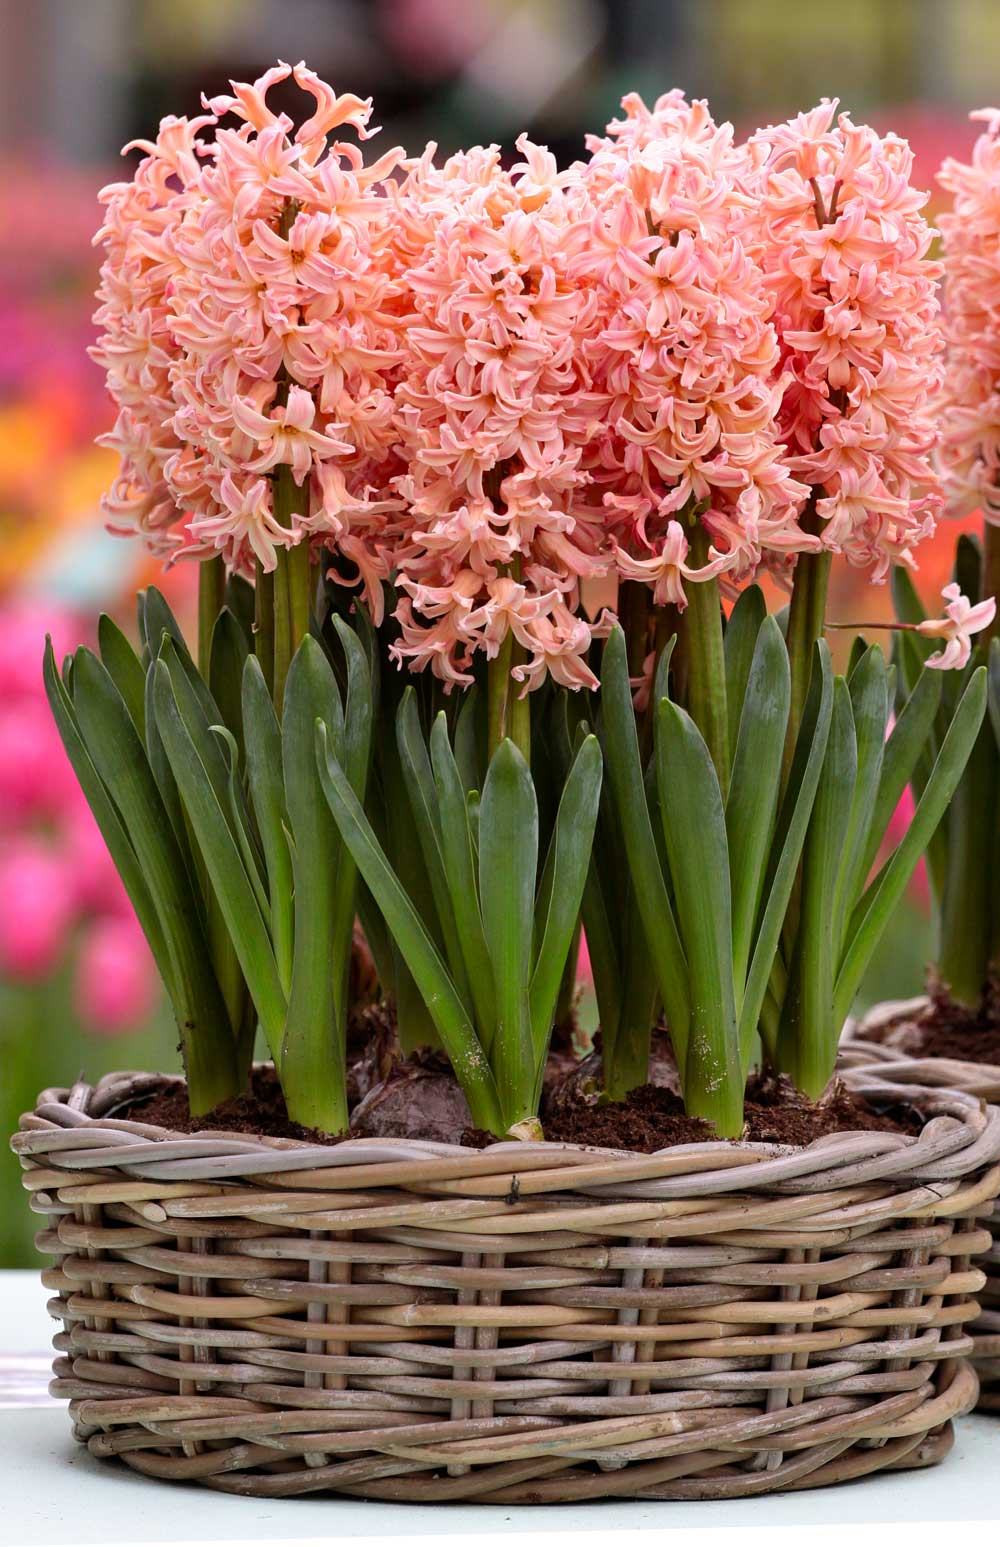 How to force hyacinth bulbs for indoor flowers longfield gardens how to force hyacinth bulbs for indoor flowers longfield gardens reviewsmspy